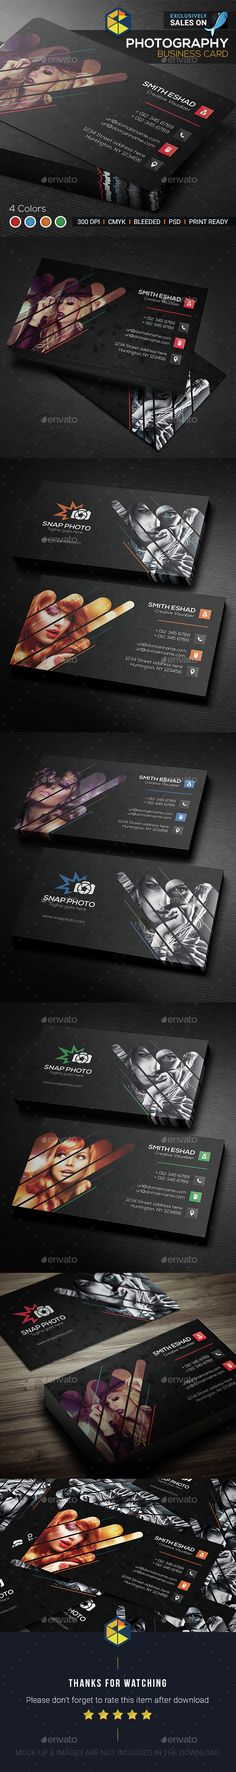 Photography Business Card — Photoshop PSD #professional card #business card • Available here → https://graphicriver.net/item/photography-business-card/14879750?ref=pxcr